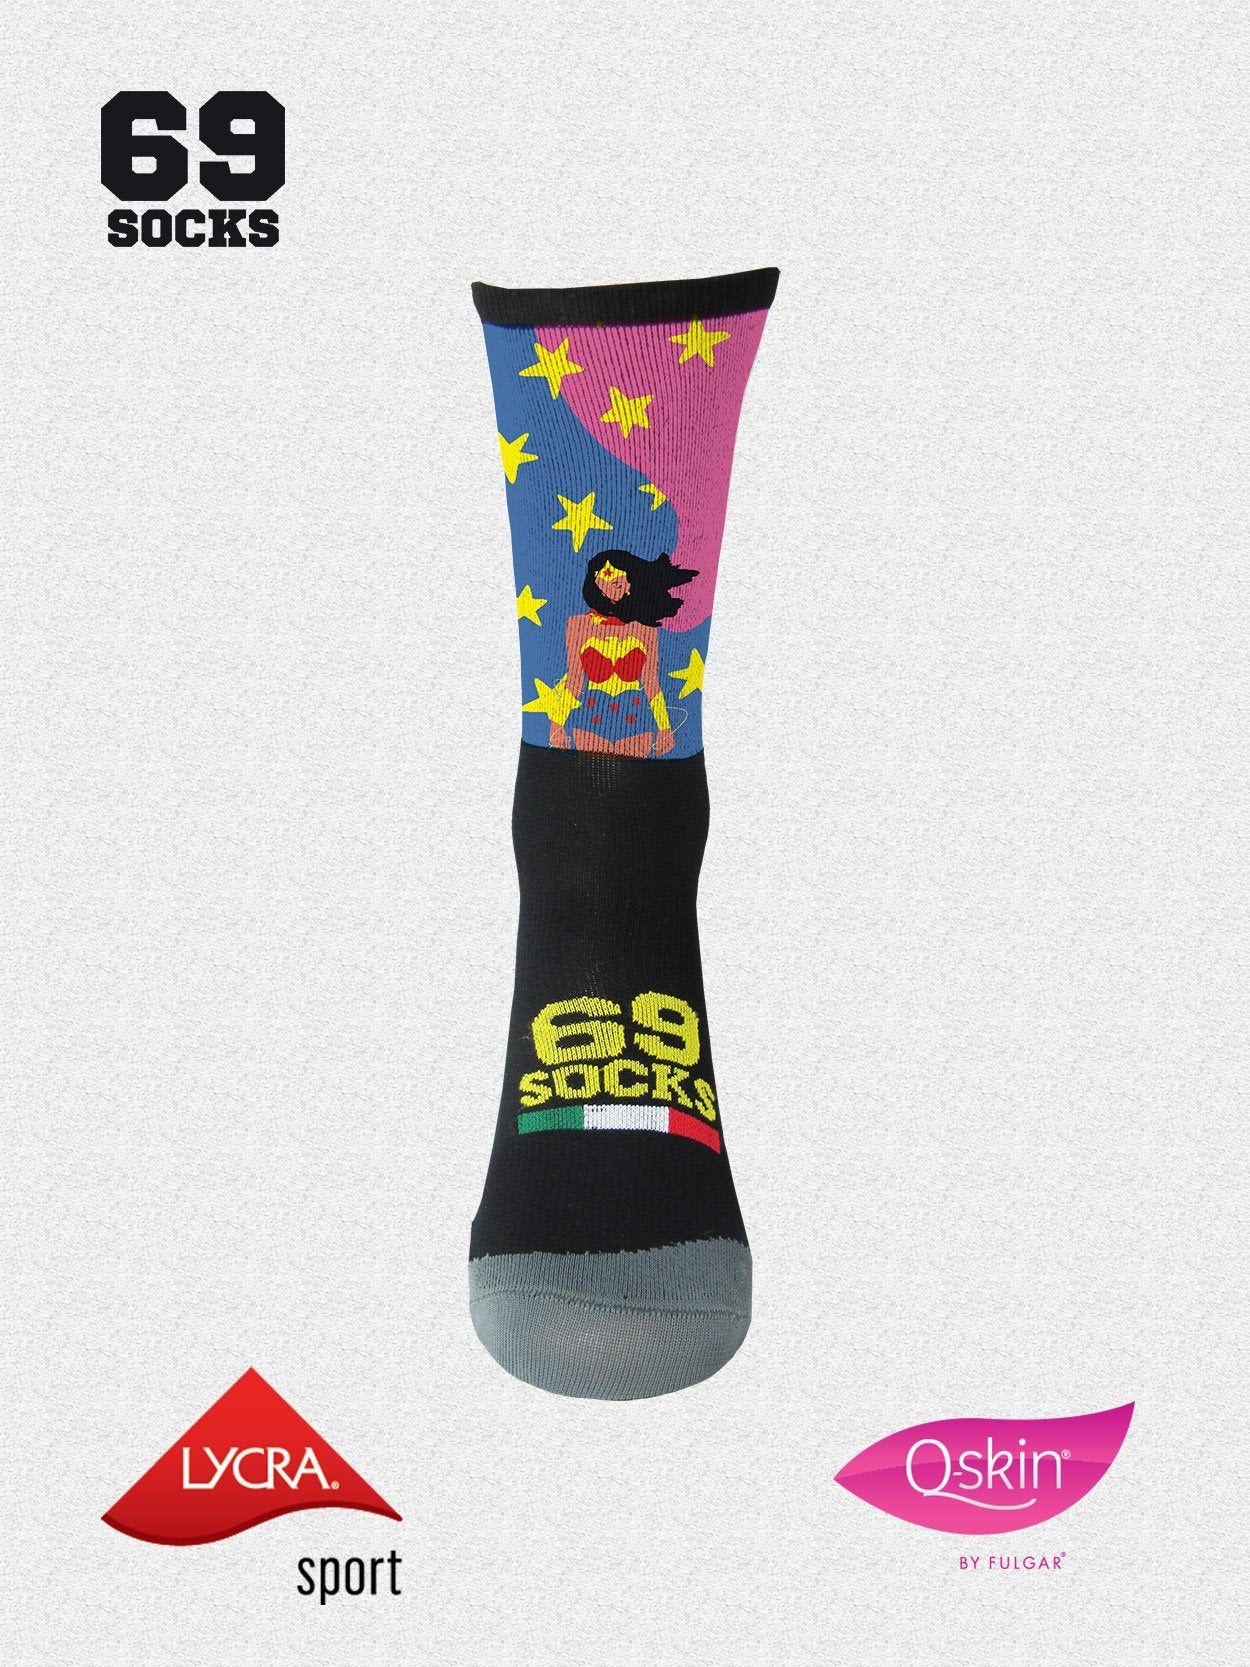 #69socks Q-skin Short wonder Runner